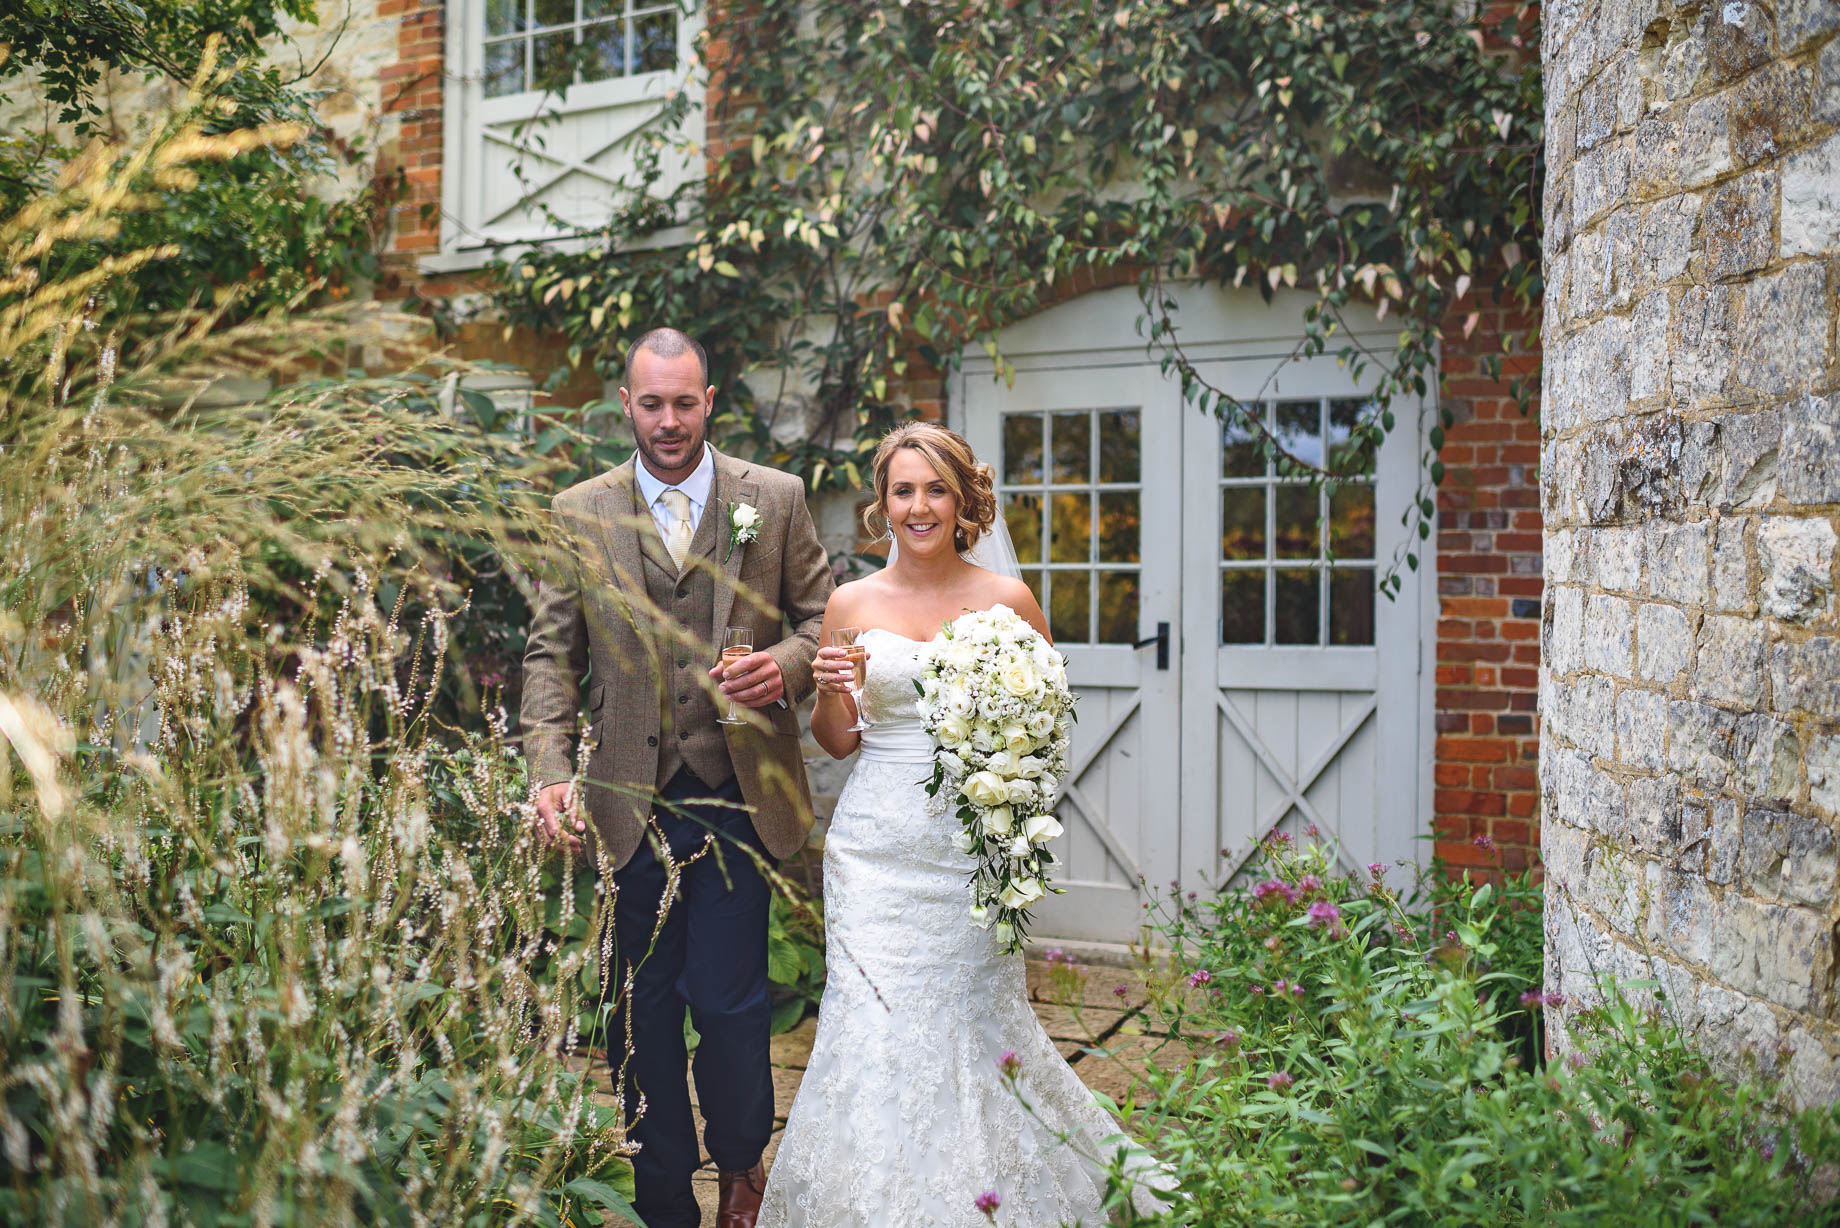 Bury Court Barn wedding photography - Guy Collier - Kate and Russ (82 of 187)